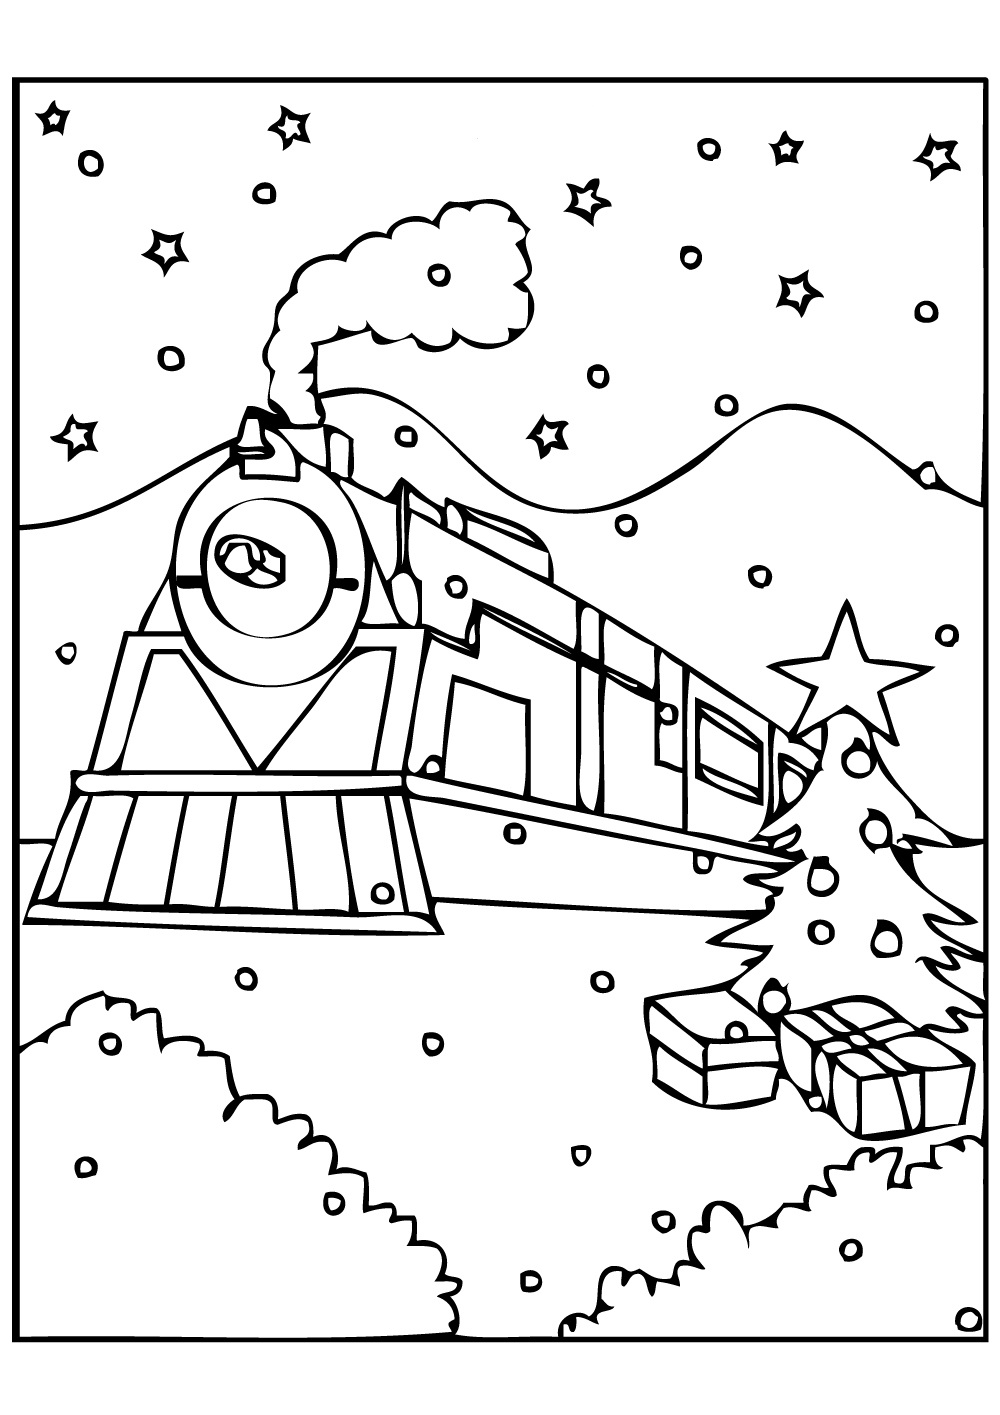 Christmas Train Coloring Pages : christmas, train, coloring, pages, Polar, Express, Coloring, Pages